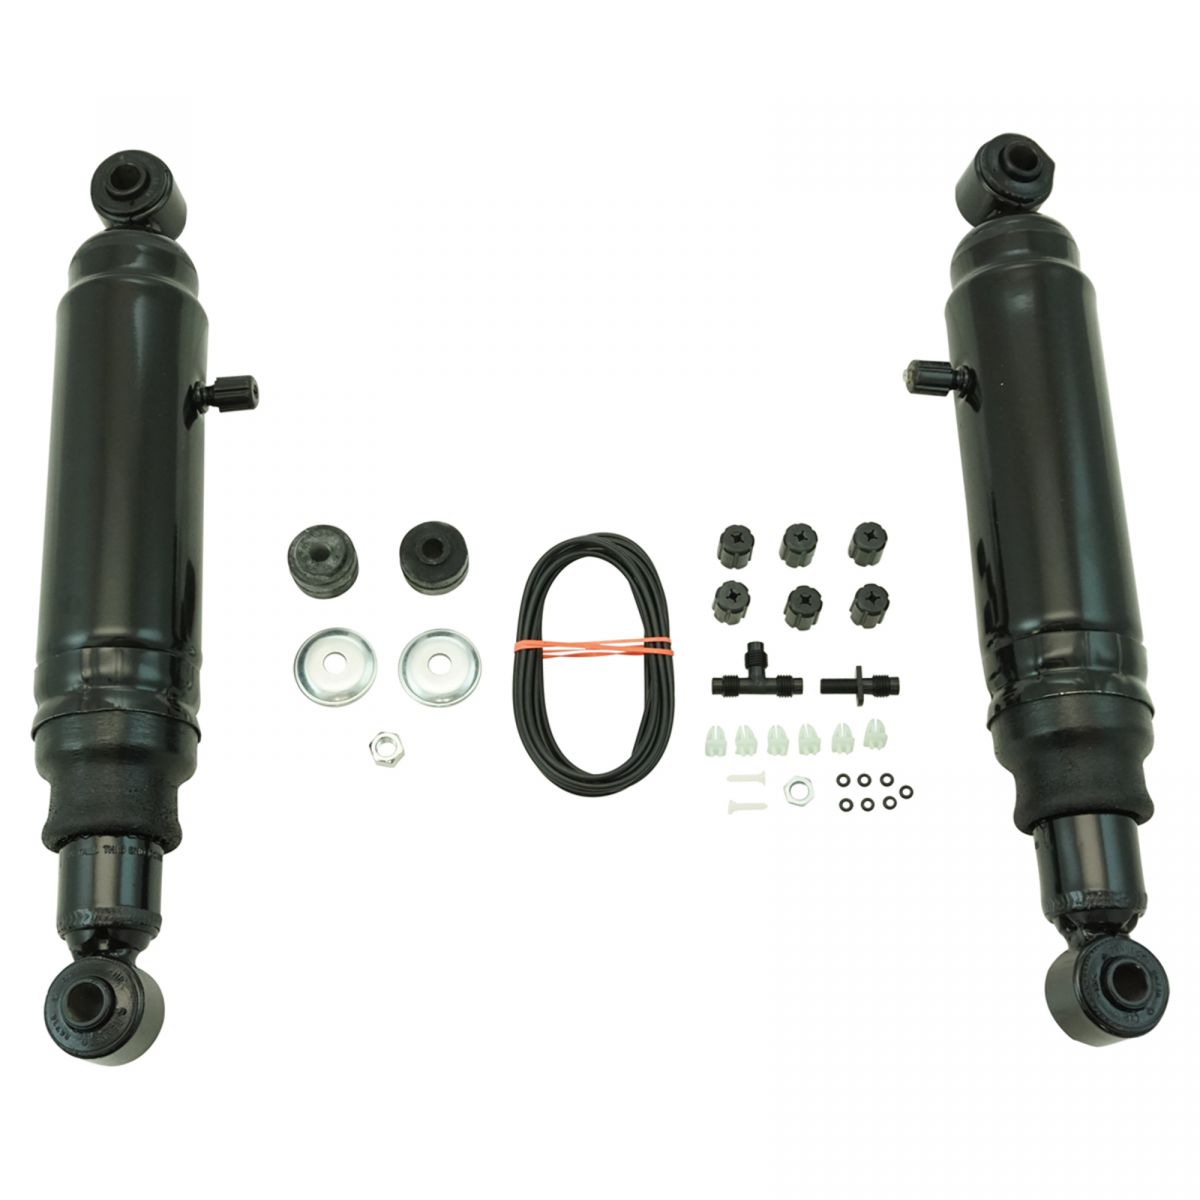 Details about Monroe MA834 Max-Air Rear Air Shock Absorber Pair for Chevy  GMC Pickup Truck New